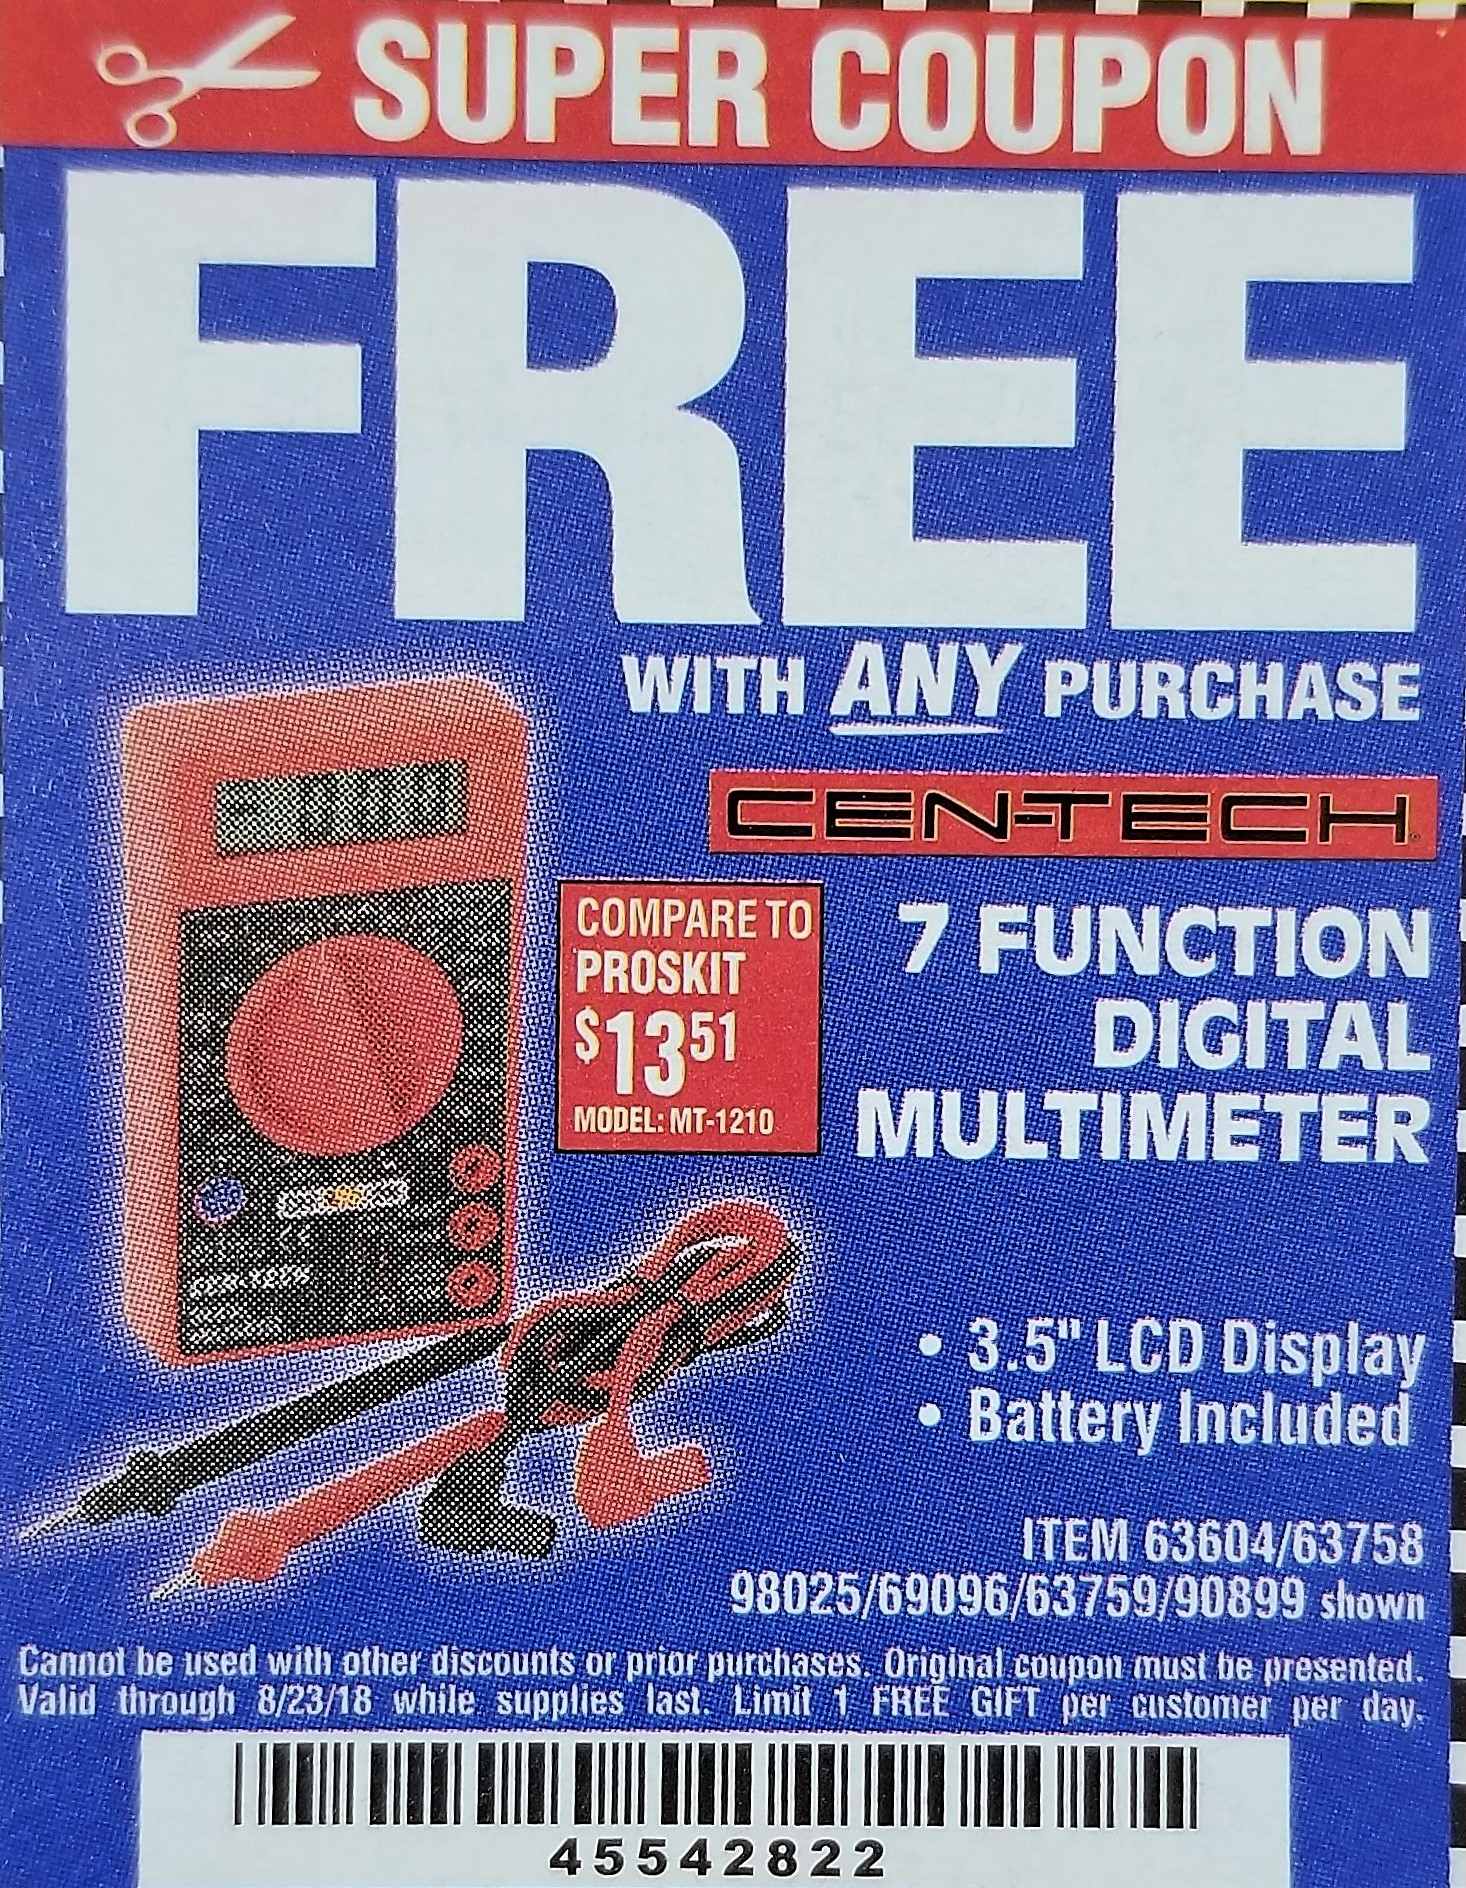 Harbor Freight Tools Coupon Database Free Coupons 25 Percent Off Cen Tech 7 Function Digital Multimeter For Electronic Circuit Battery Lot No 90899 98025 69096 63604 63758 63759 Expired 8 23 18 Fwp